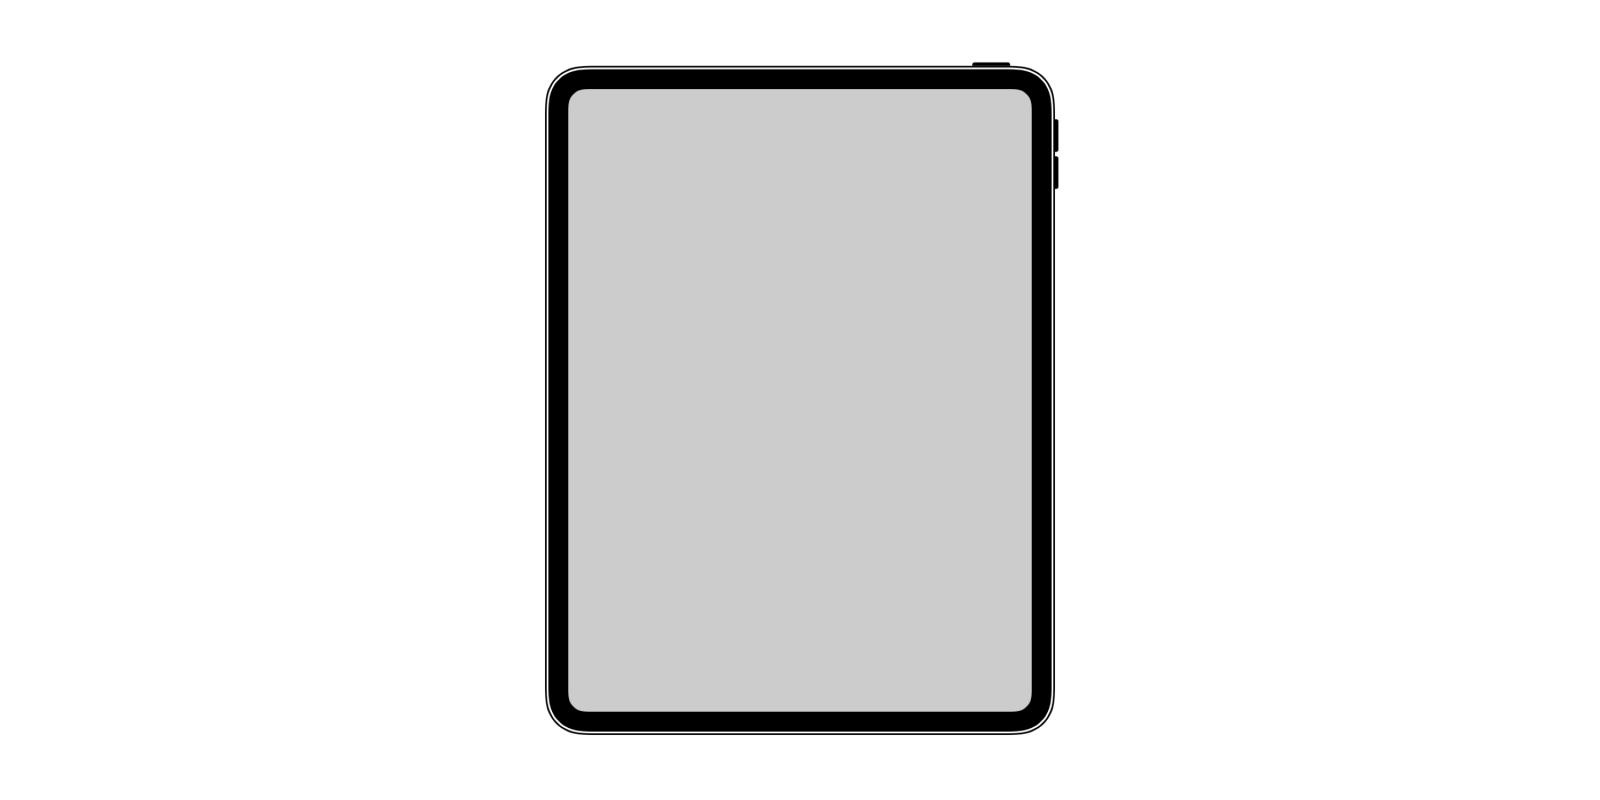 Exclusive: Icon found in iOS shows 2018 iPad Pro - 9to5Mac